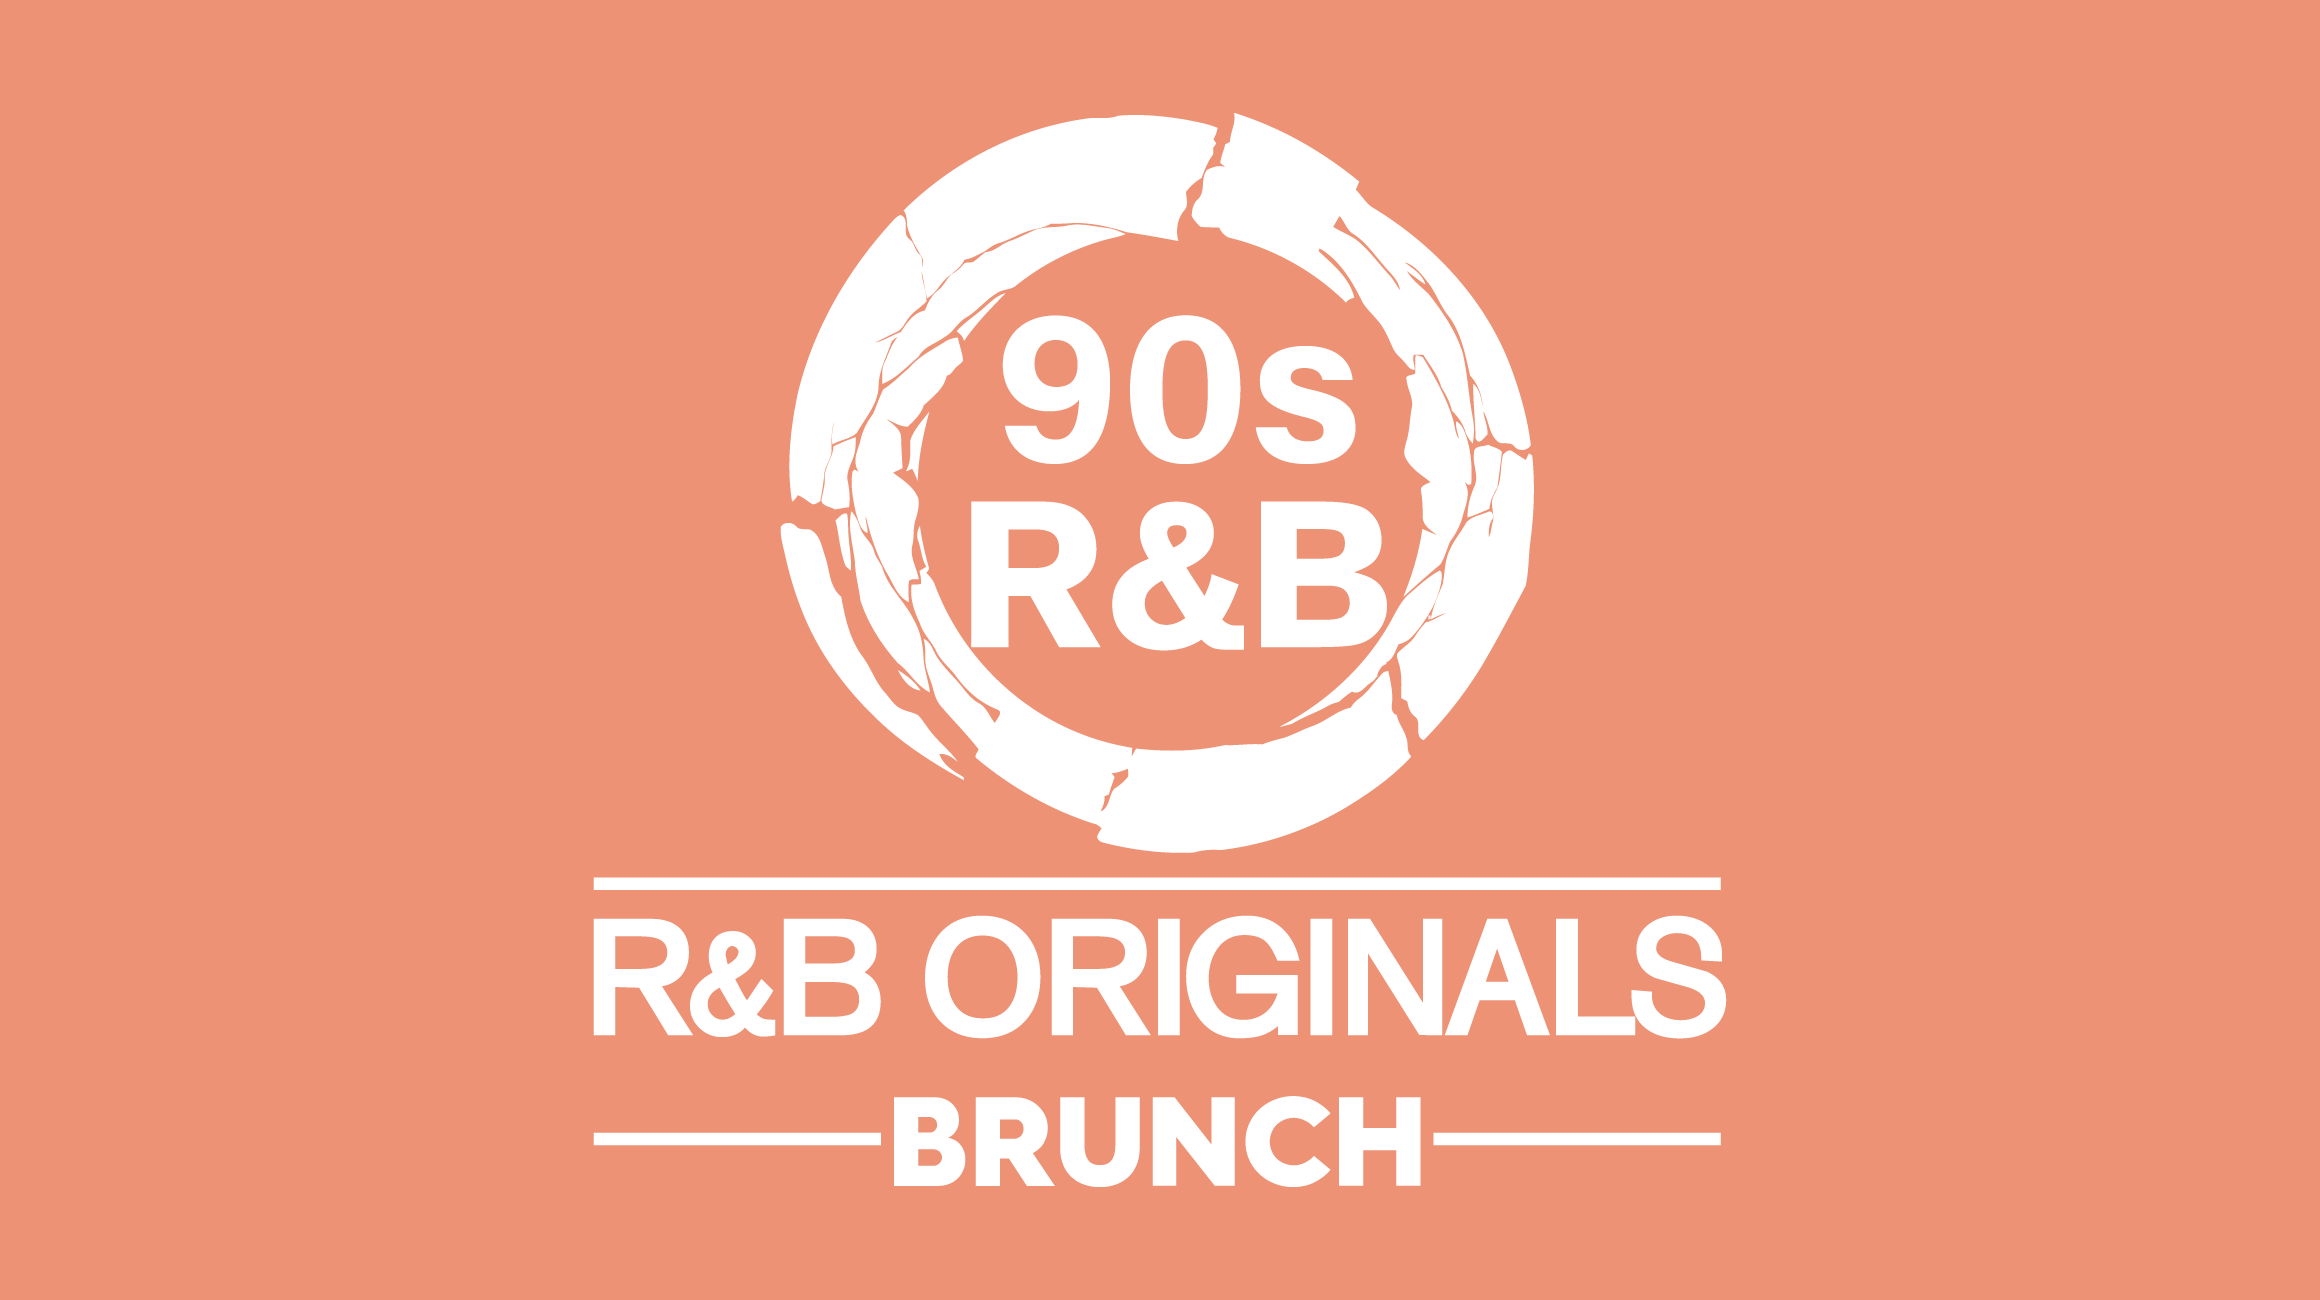 90s R&B Original Classics Bottomless Brunch in London at HUCKSTER Paddington